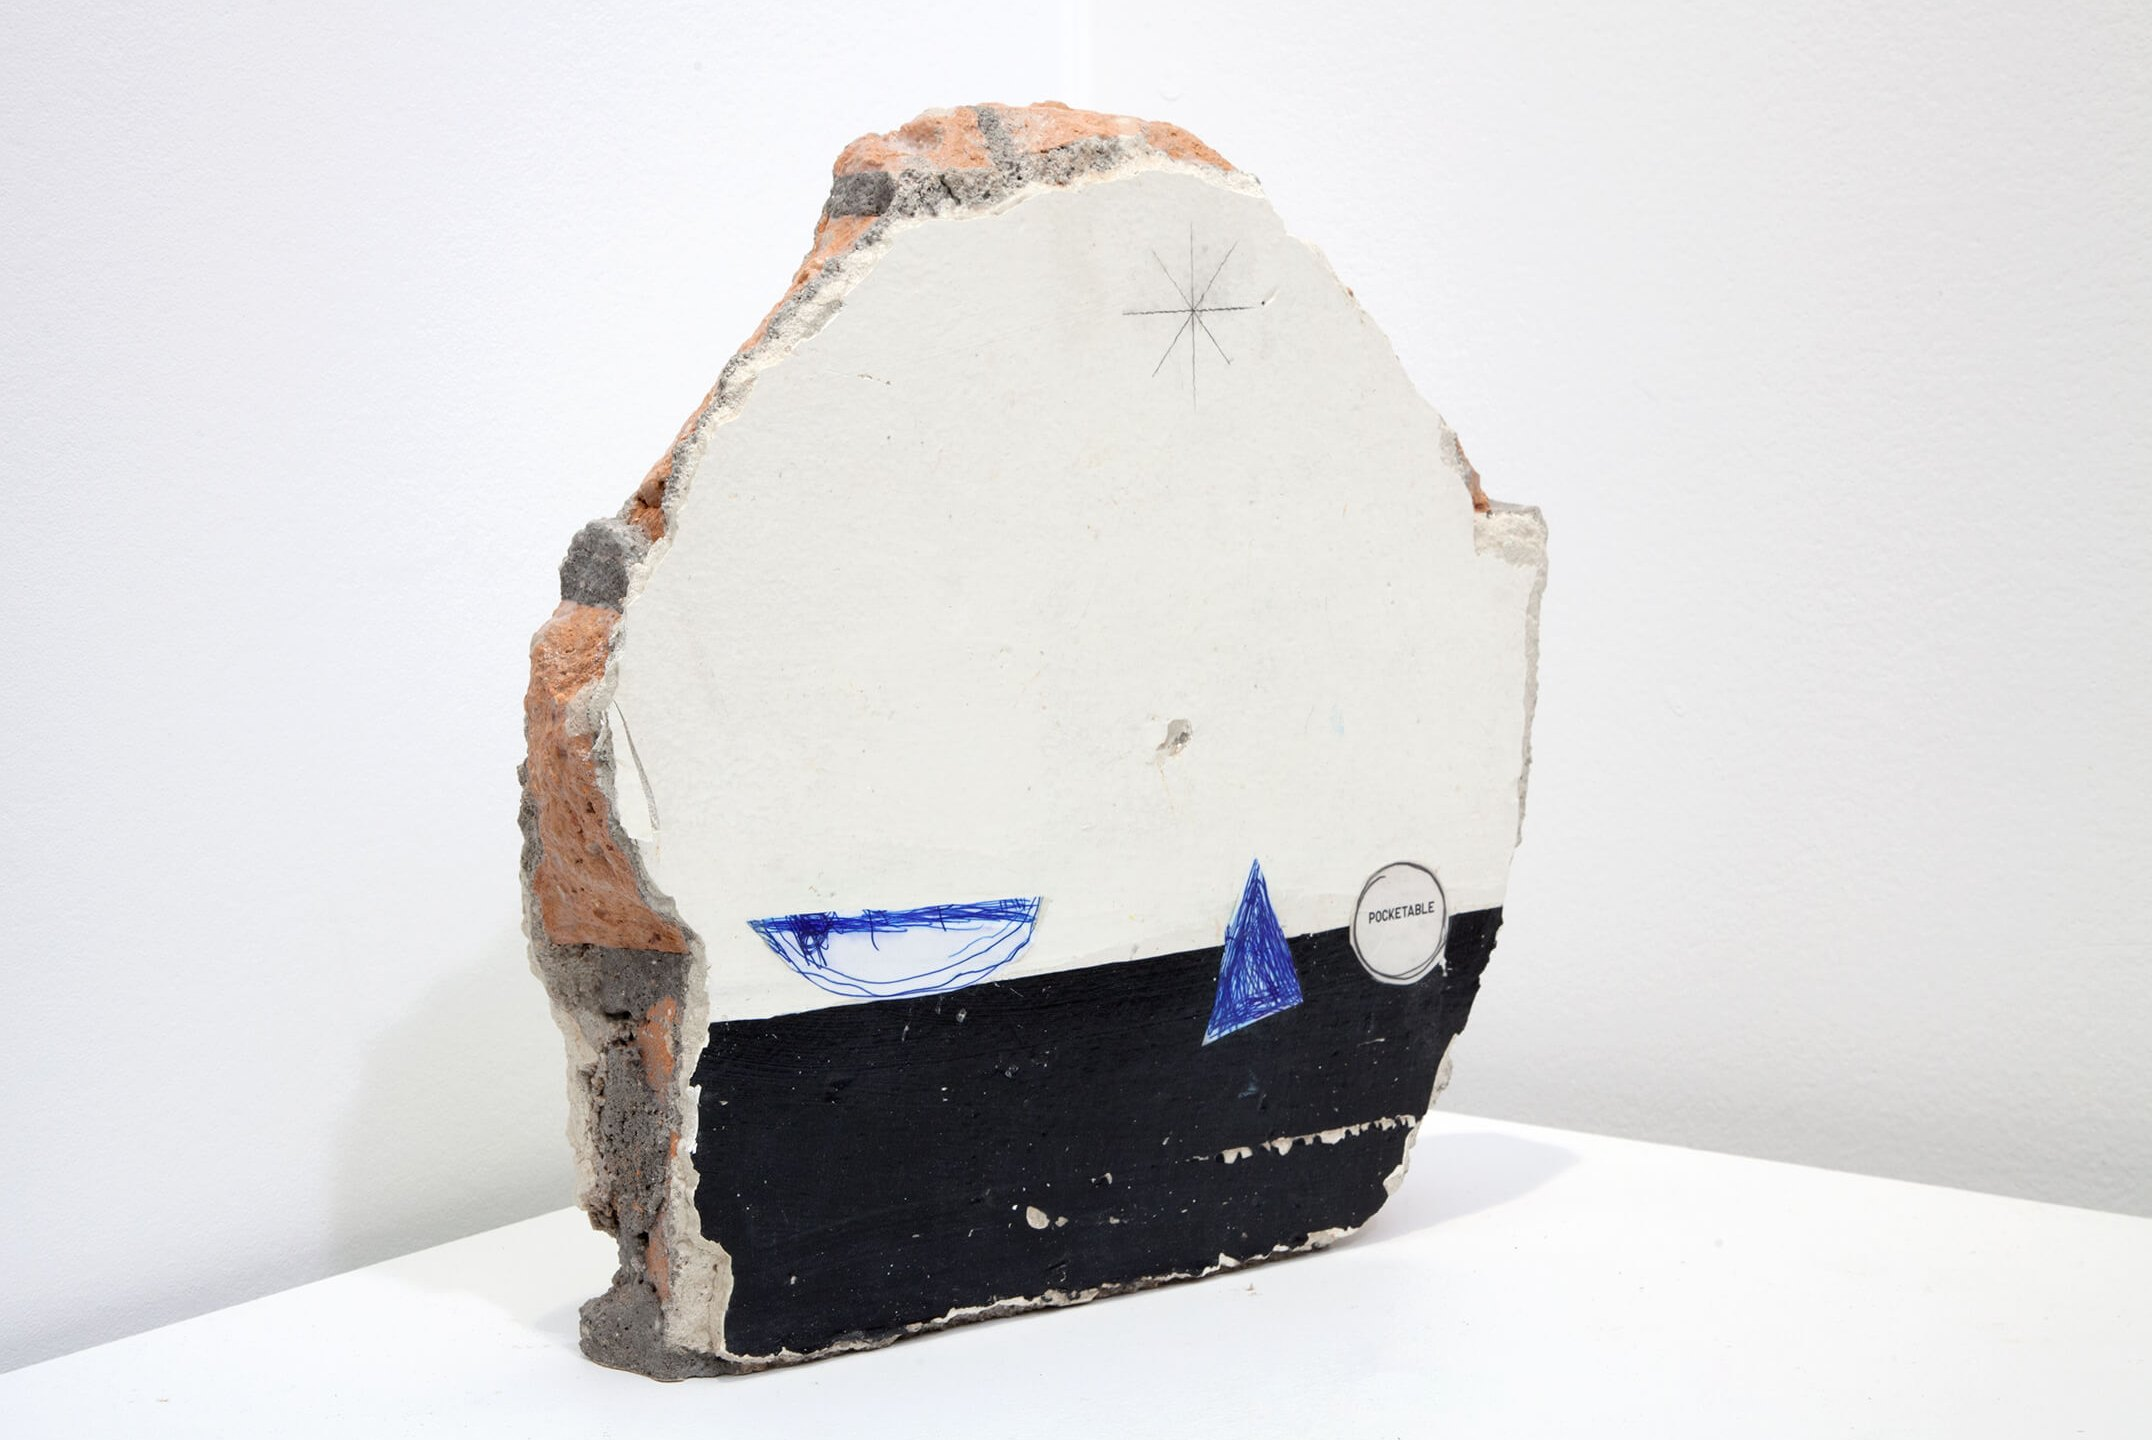 Adriano Costa, <em>Caraívas</em>, 2014, brick wall, drawing and collage, 35 × 35 × 8 cm - Mendes Wood DM